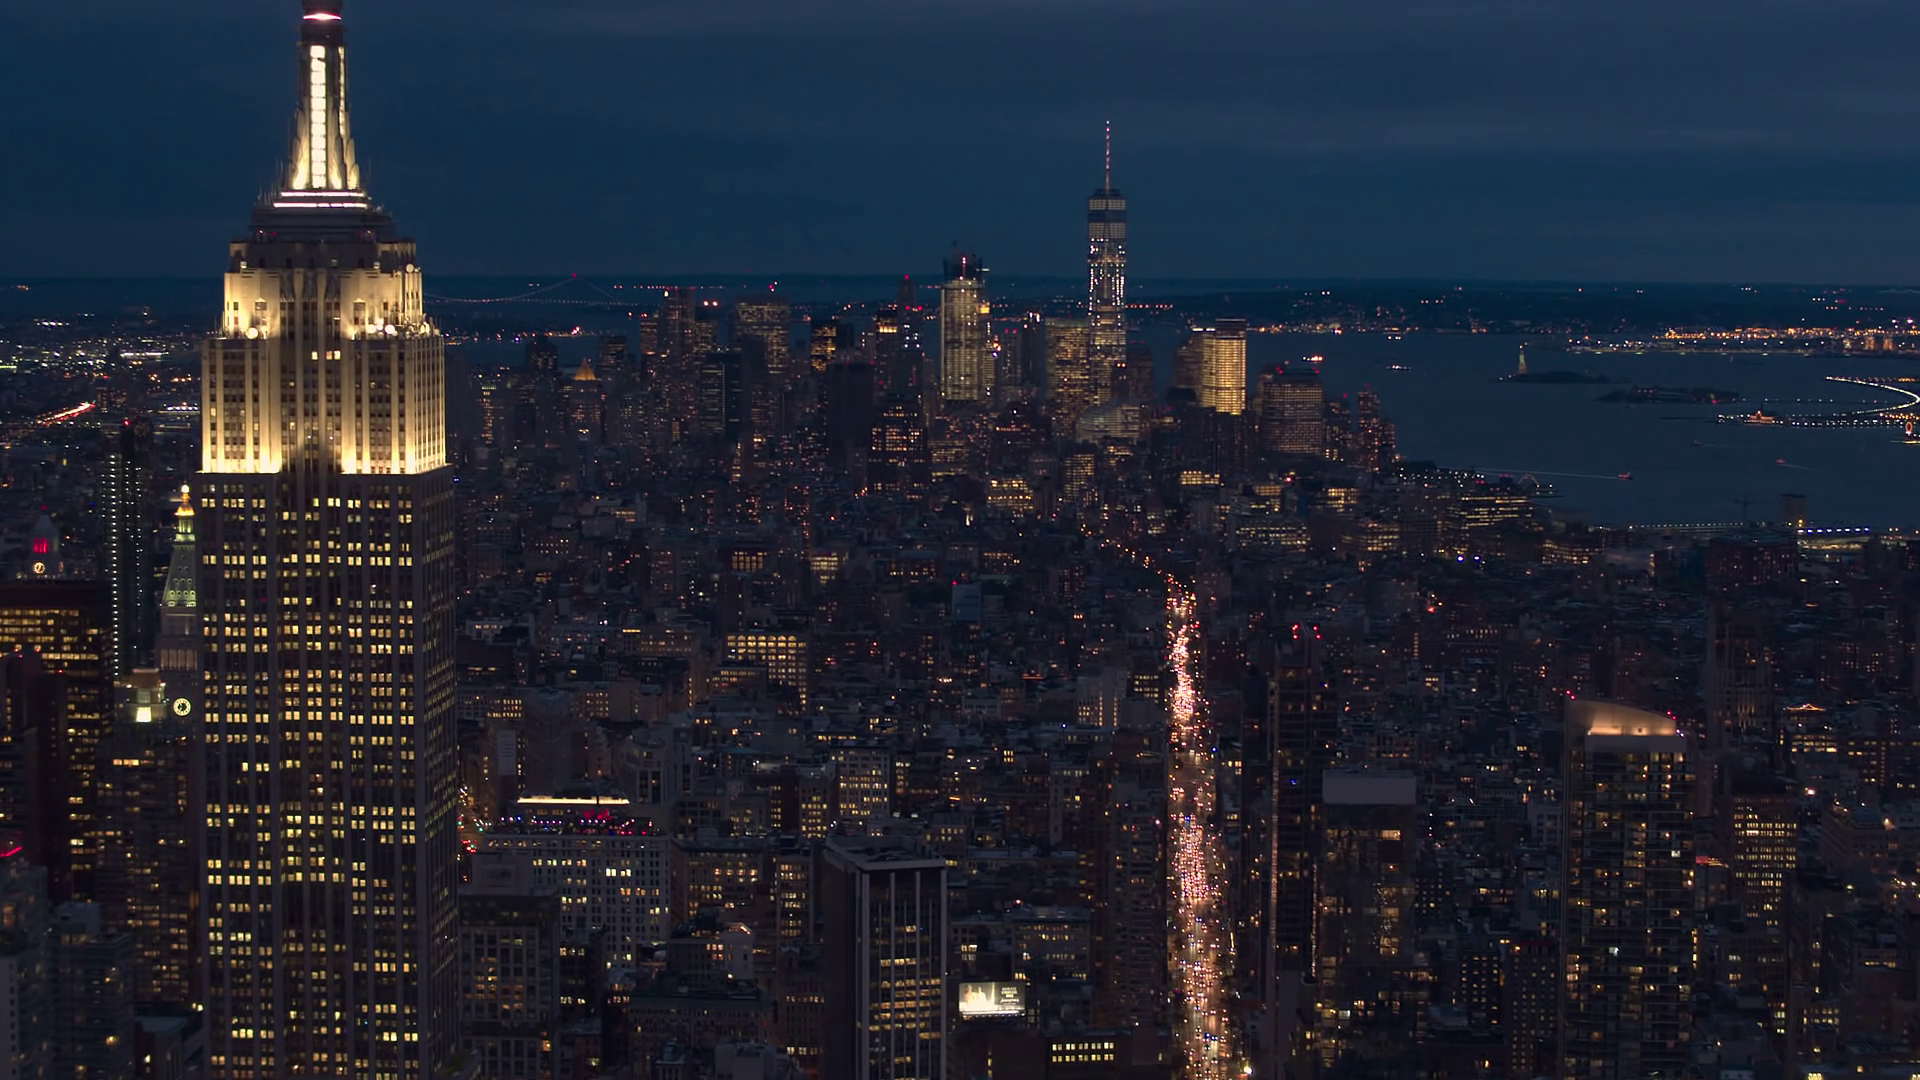 videoblocks-aerial-close-up-city-lights-and-dense-traffic-on-streets-of-new-york-at-night_rfp0cdw9x_thumbnail-full01